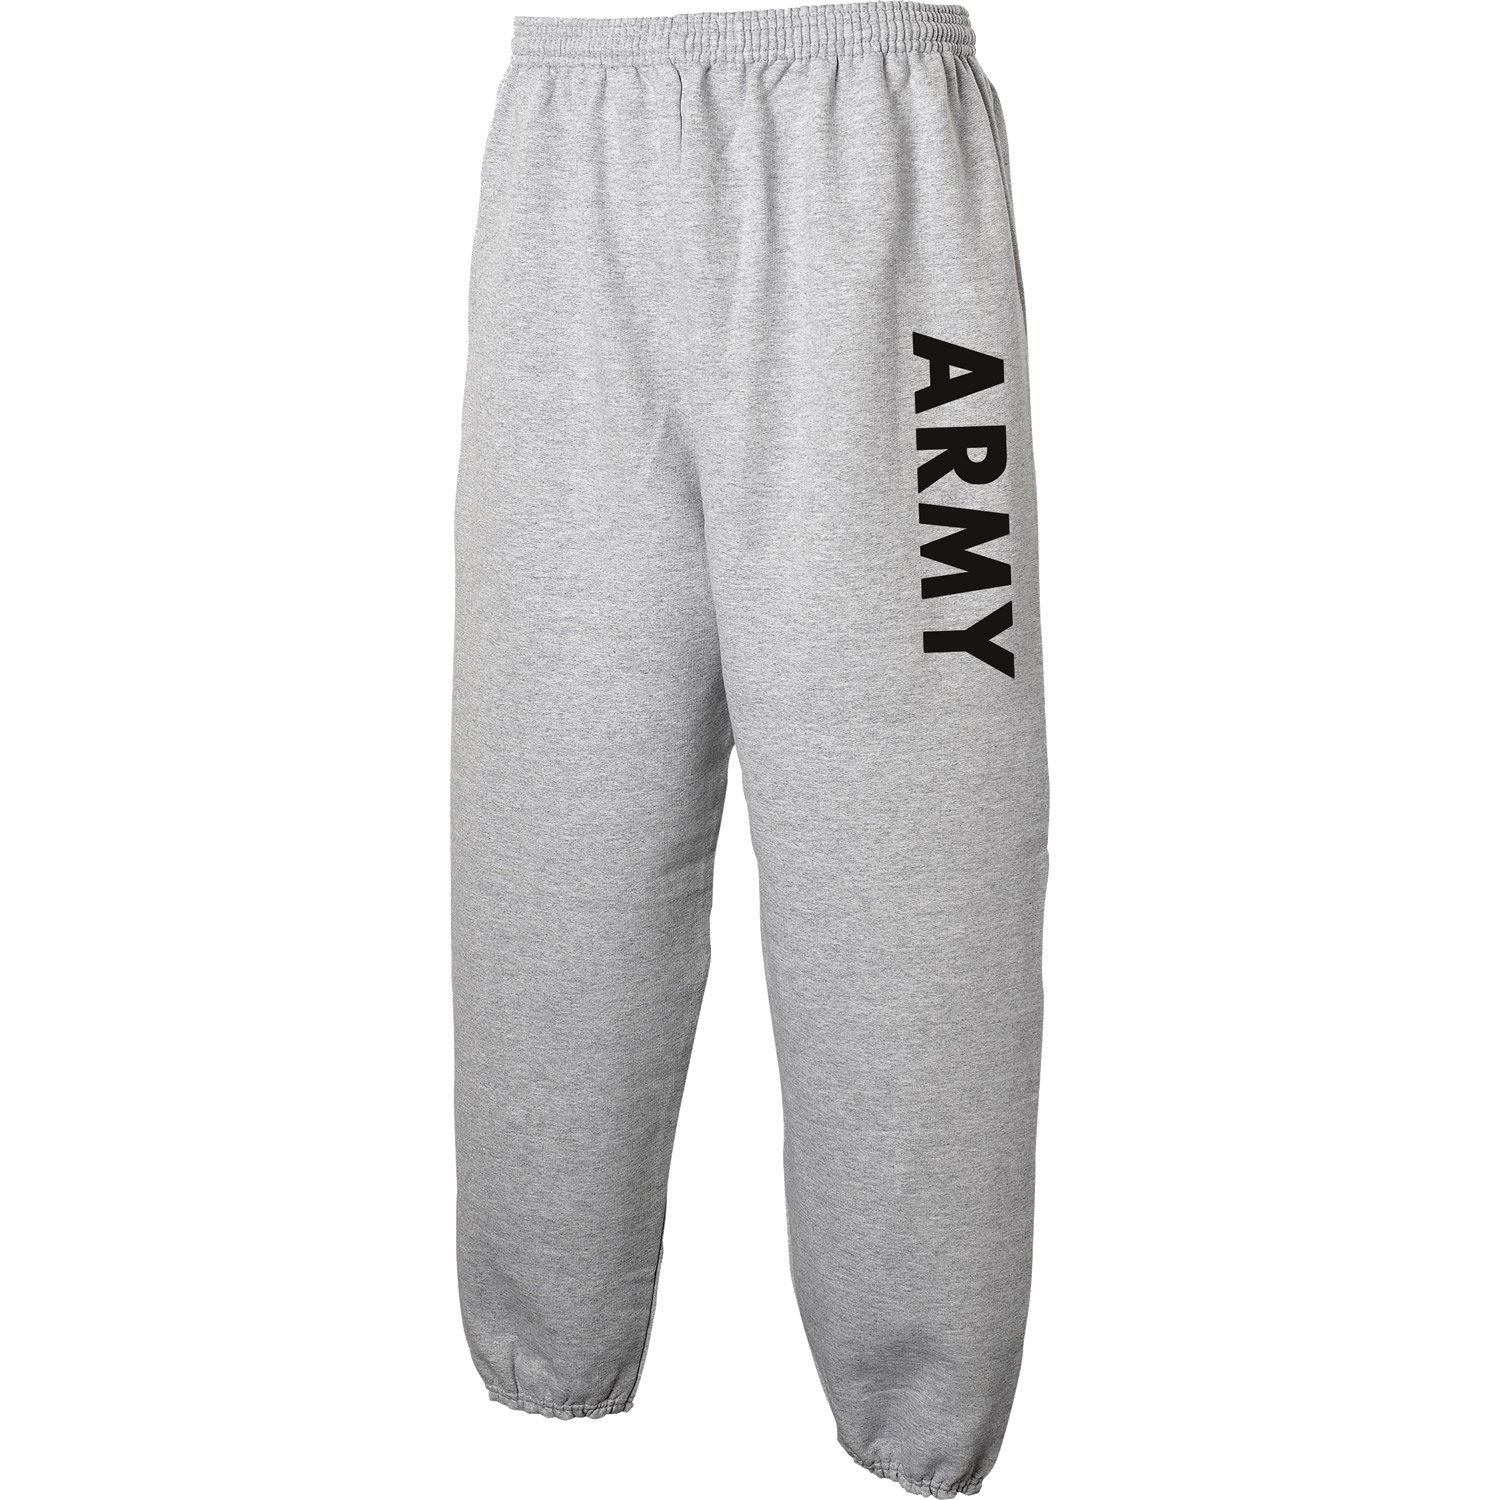 ARMY Sweat Pants - Military Style Physical Training Sweat Pants in Gray PA-1010